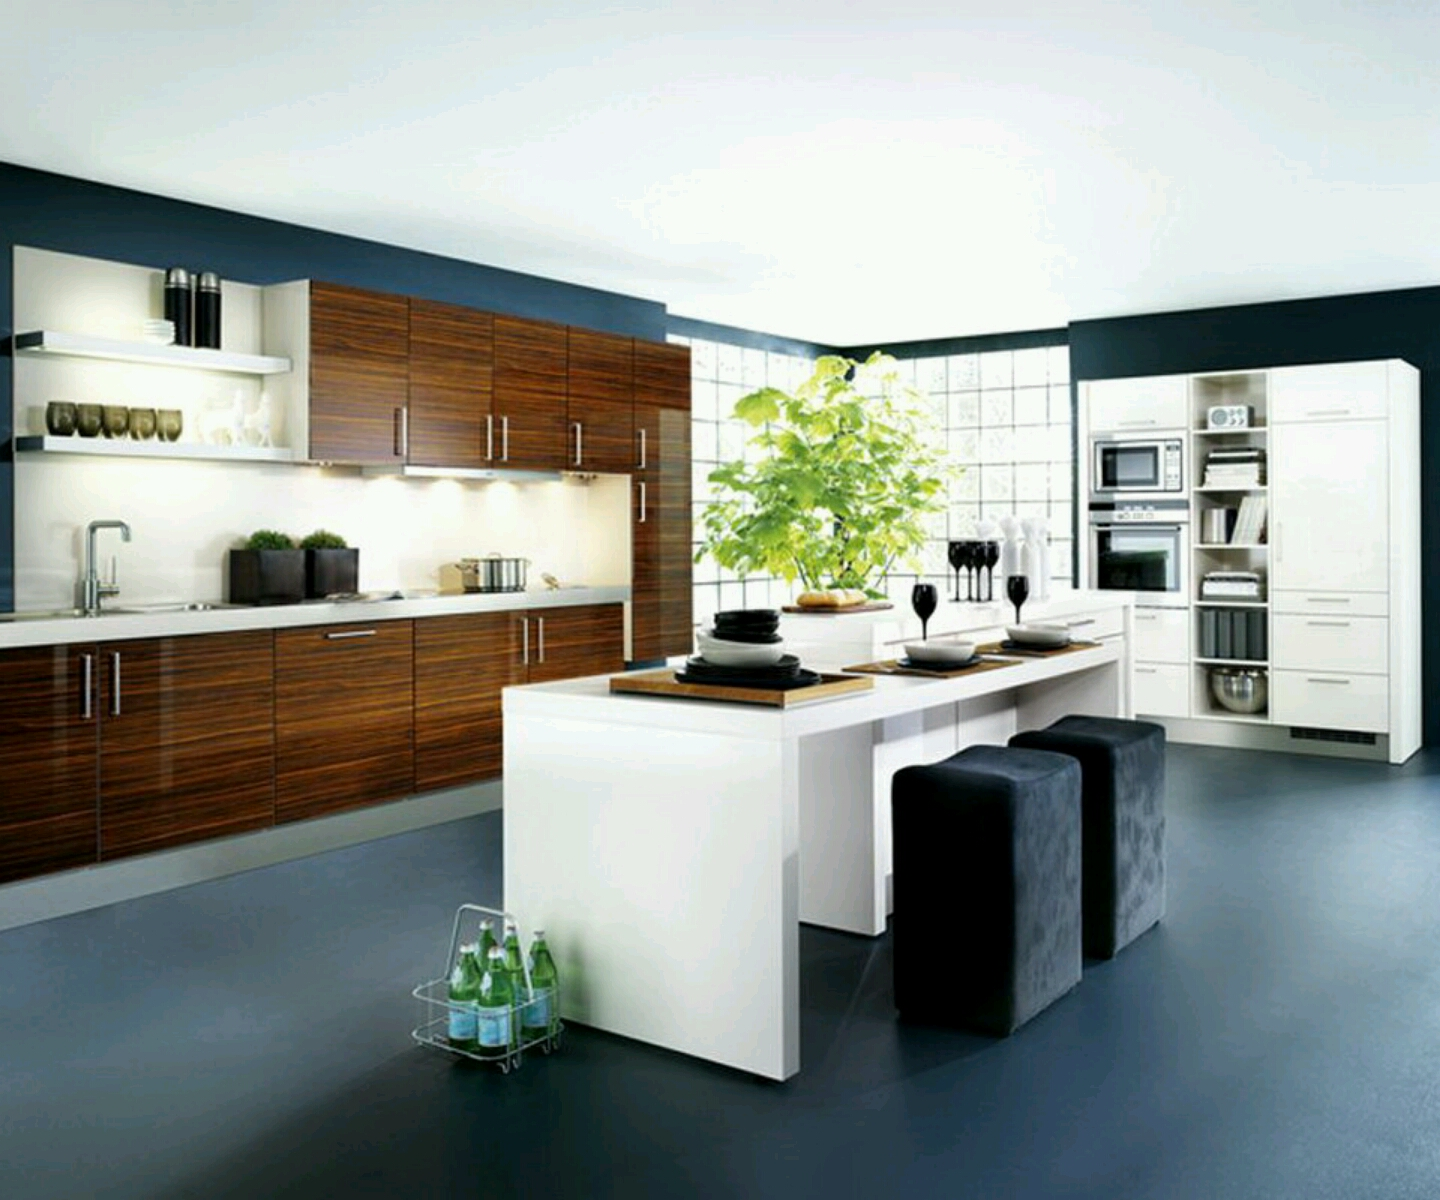 New home designs latest kitchen cabinets designs modern for Contemporary kitchen design